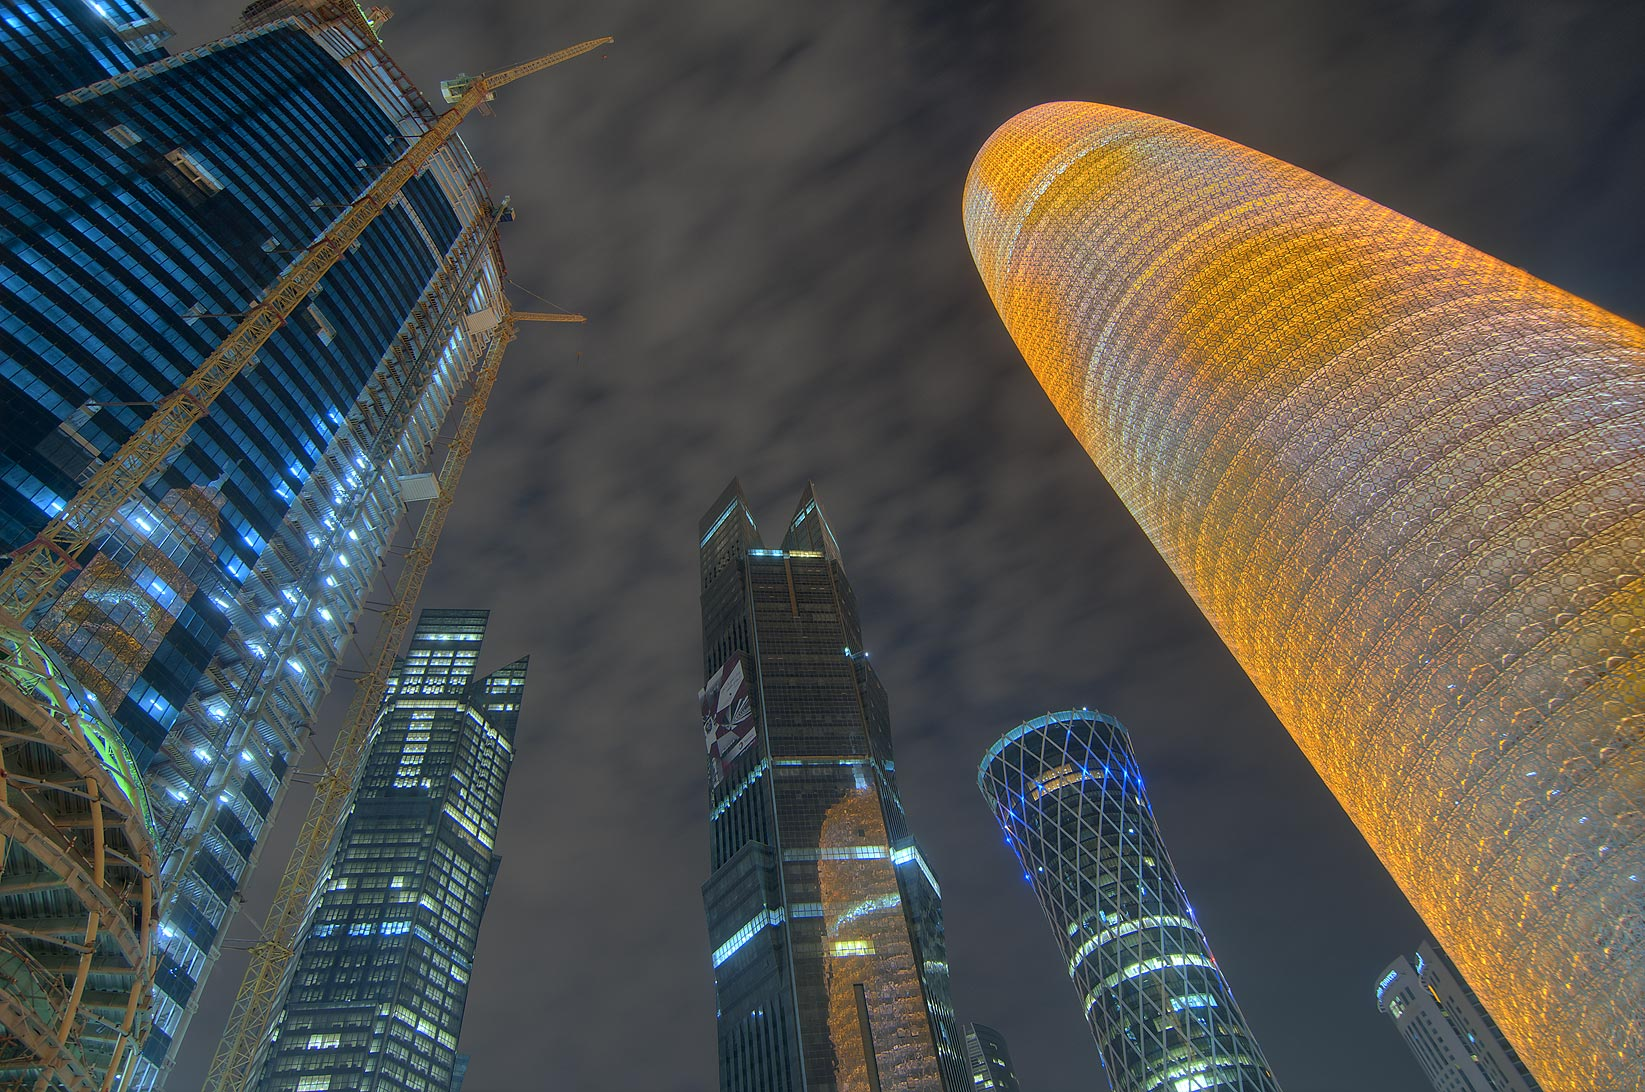 World Trade Center Tower and Complex (WTC) and Burj Qatar towers in West Bay. Doha, Qatar